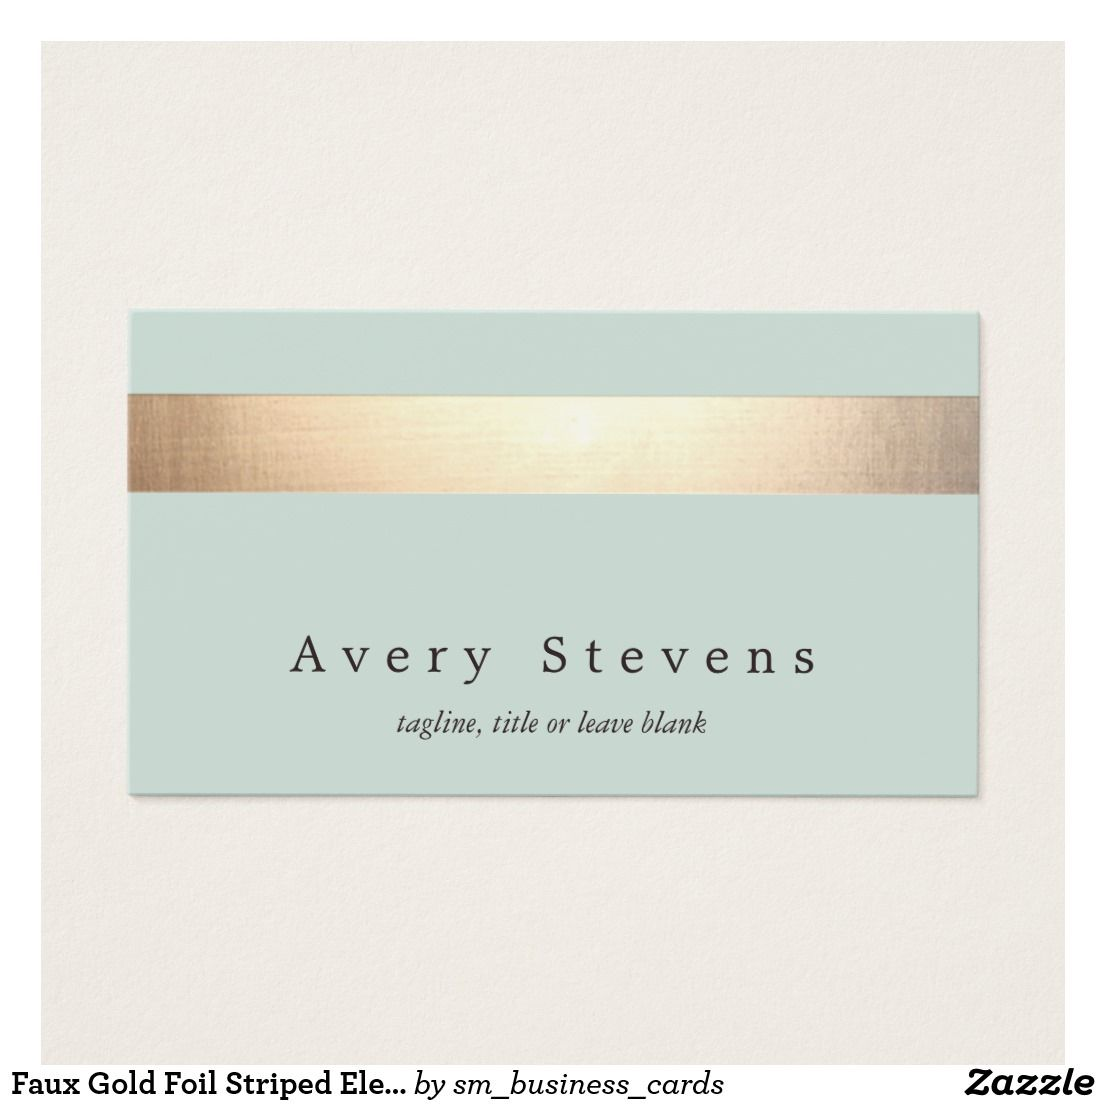 Faux Gold Foil Striped Elegant Light Blue Chic Business Card ...